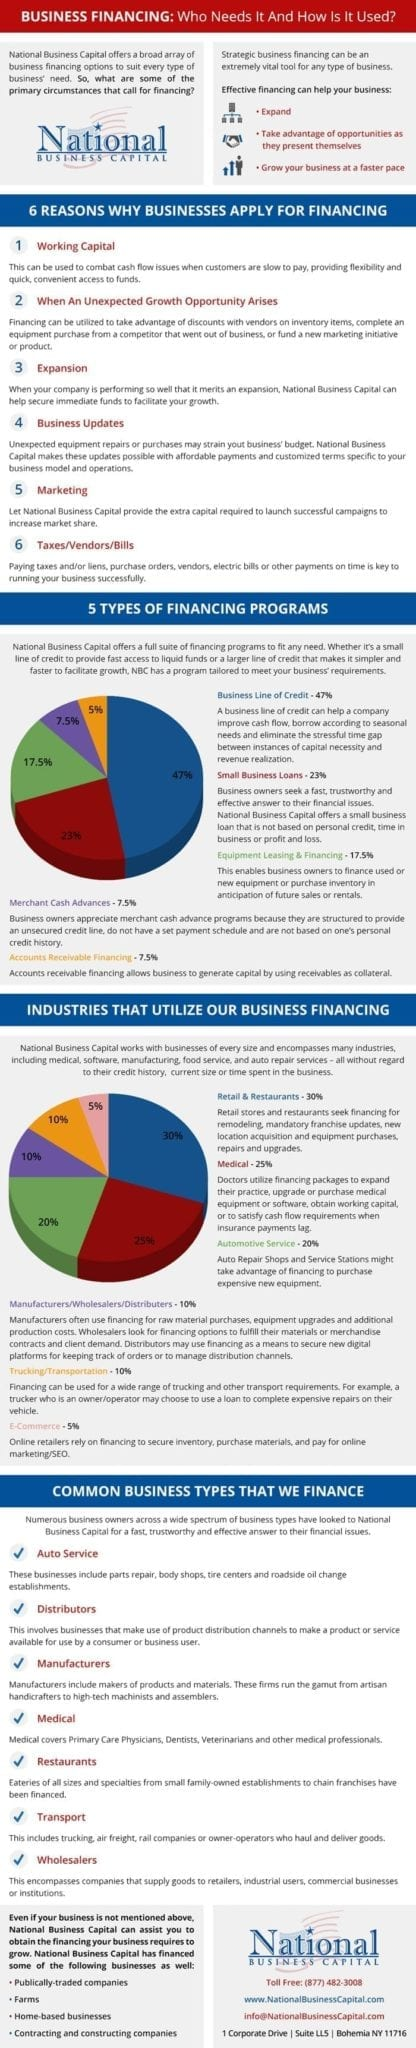 Business Financing Infographic